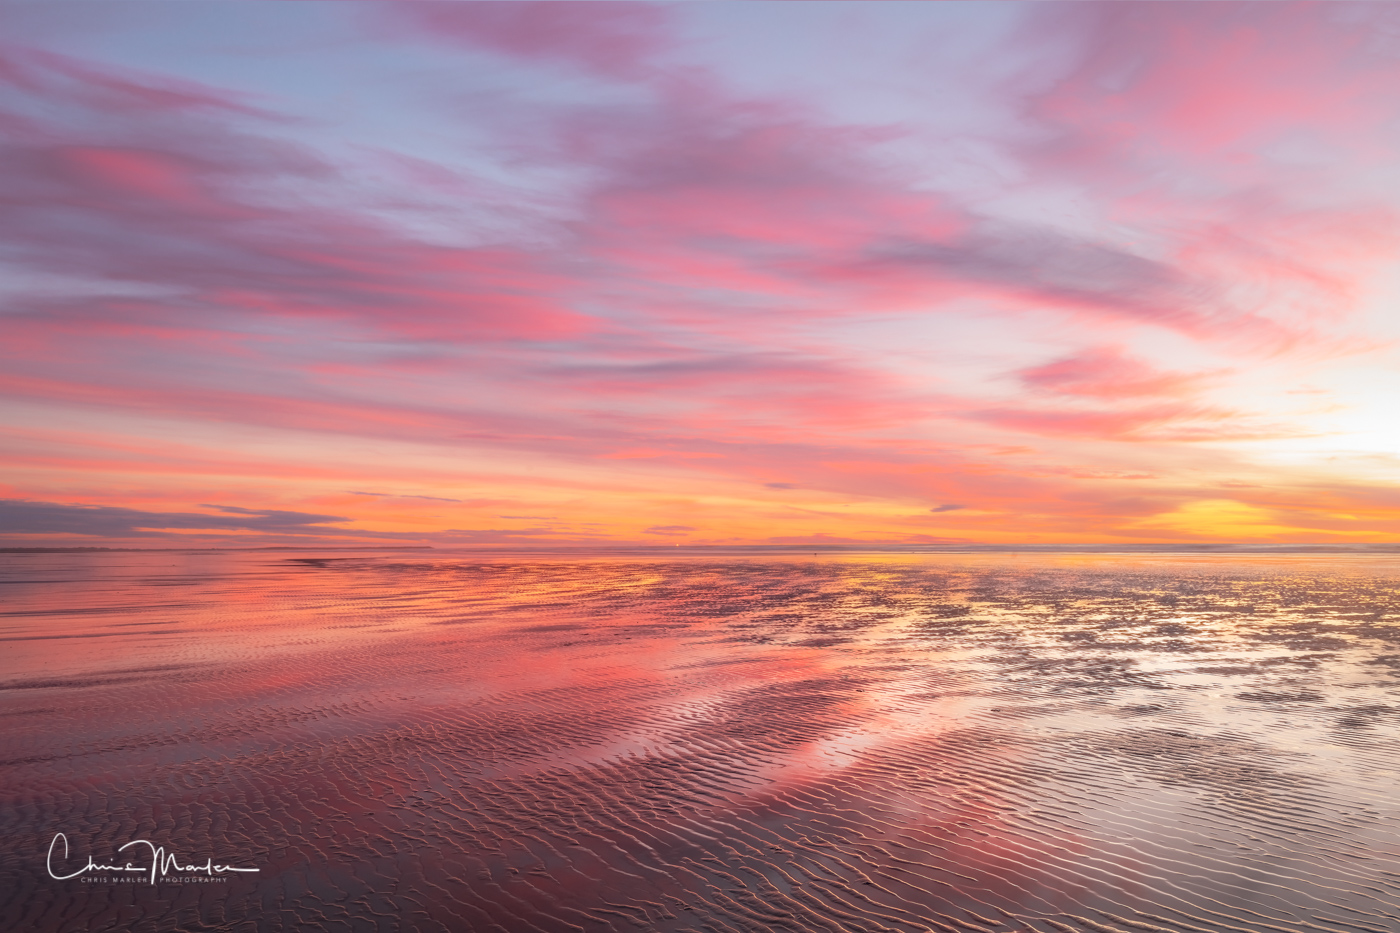 Oregon coast sunsets can be quite spectacular.   This particular image is from Newport Oregon.  Newport weather is typical for...